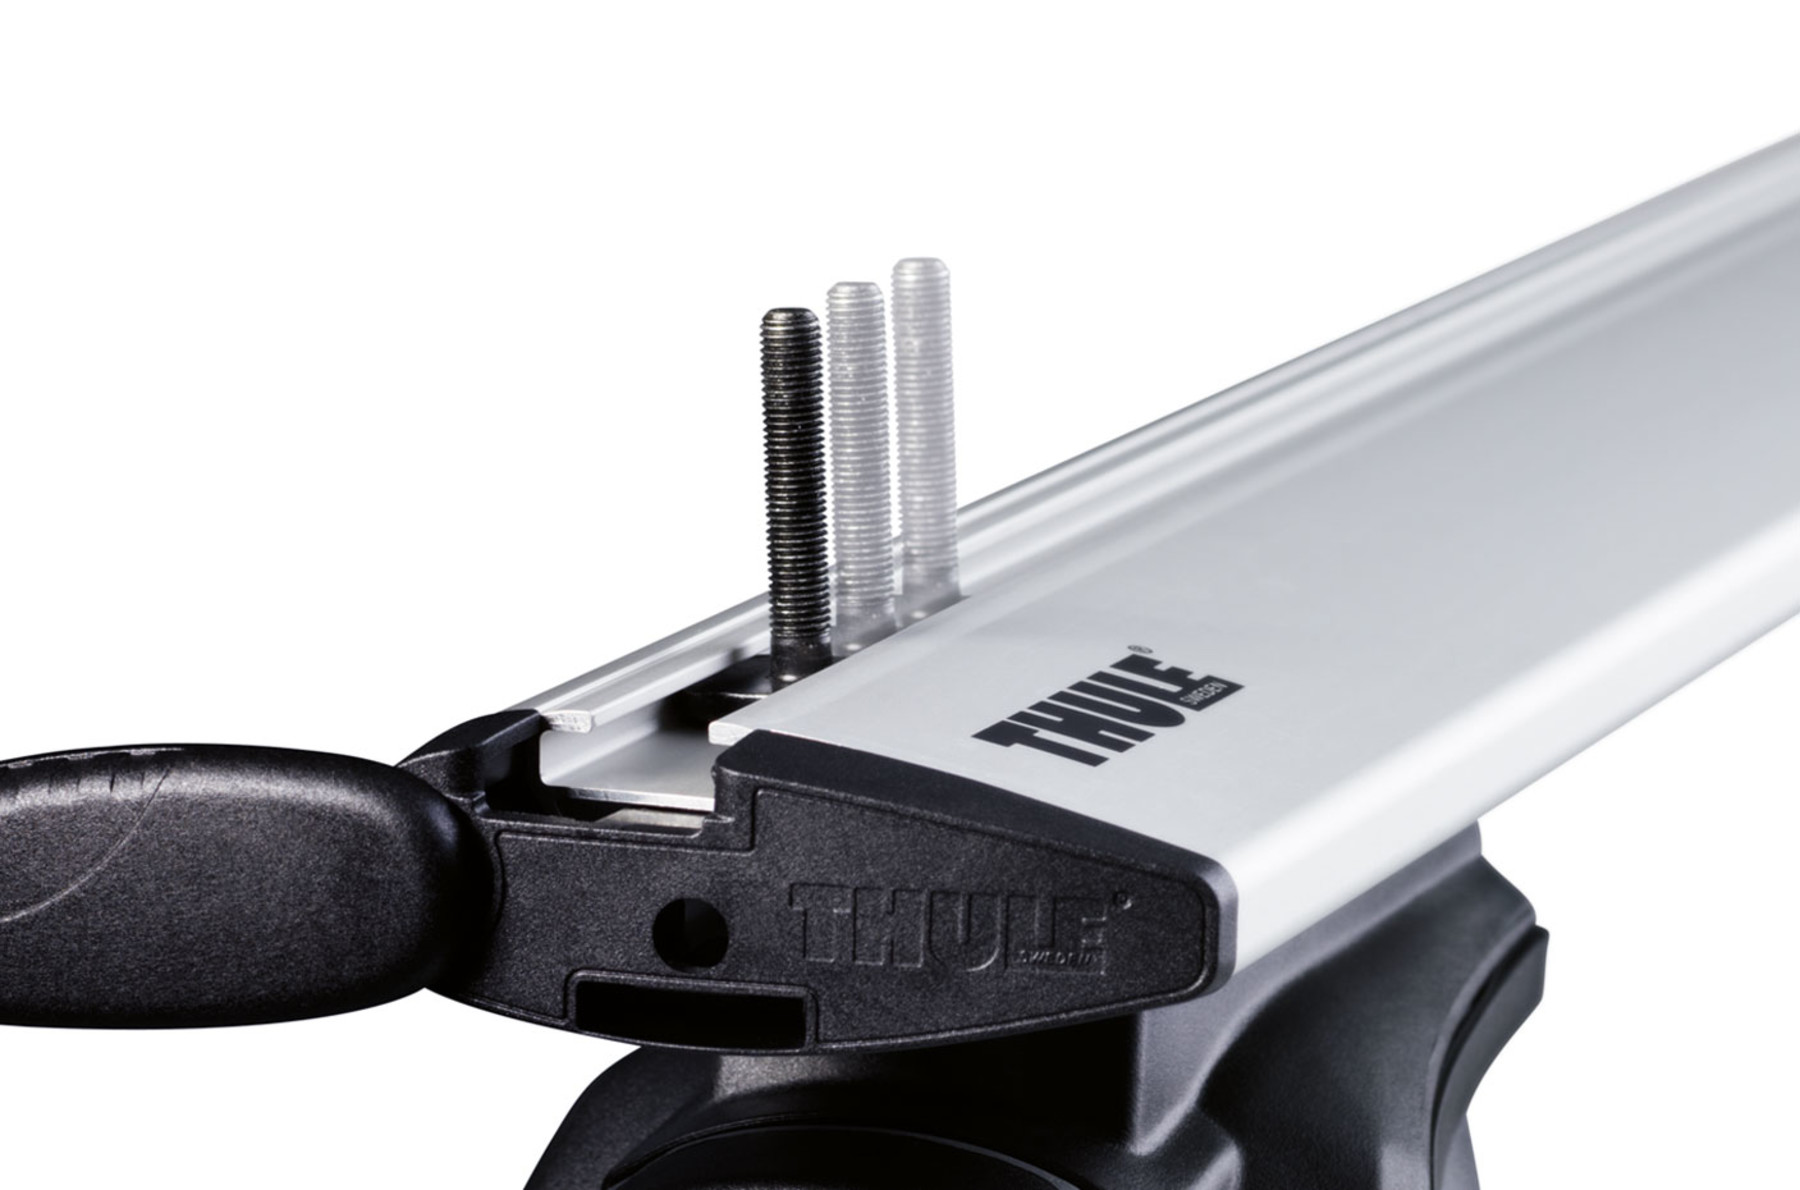 Переходник Thule T-Track Adapter (для дуг с шириной Т-слота 24 мм)